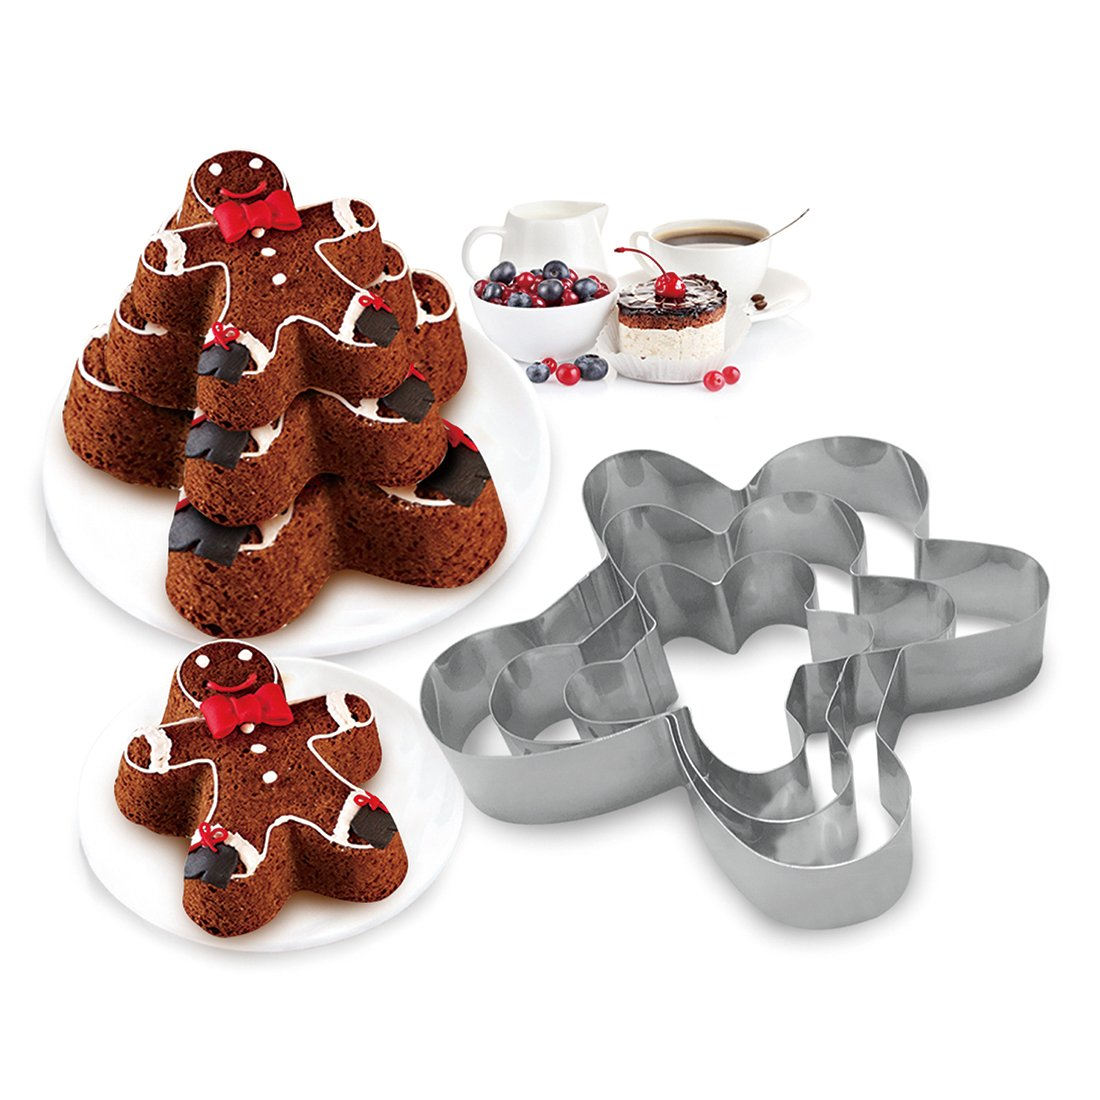 3 Tier Ginger Man Shapes Multilayer Anniversary Birthday Cake Baking Pans,Stainless Steel 3 Sizes Rings Ginger Man-Shapes Molding Mousse Cake Rings(Ginger Man-Shapes,Set of 3)